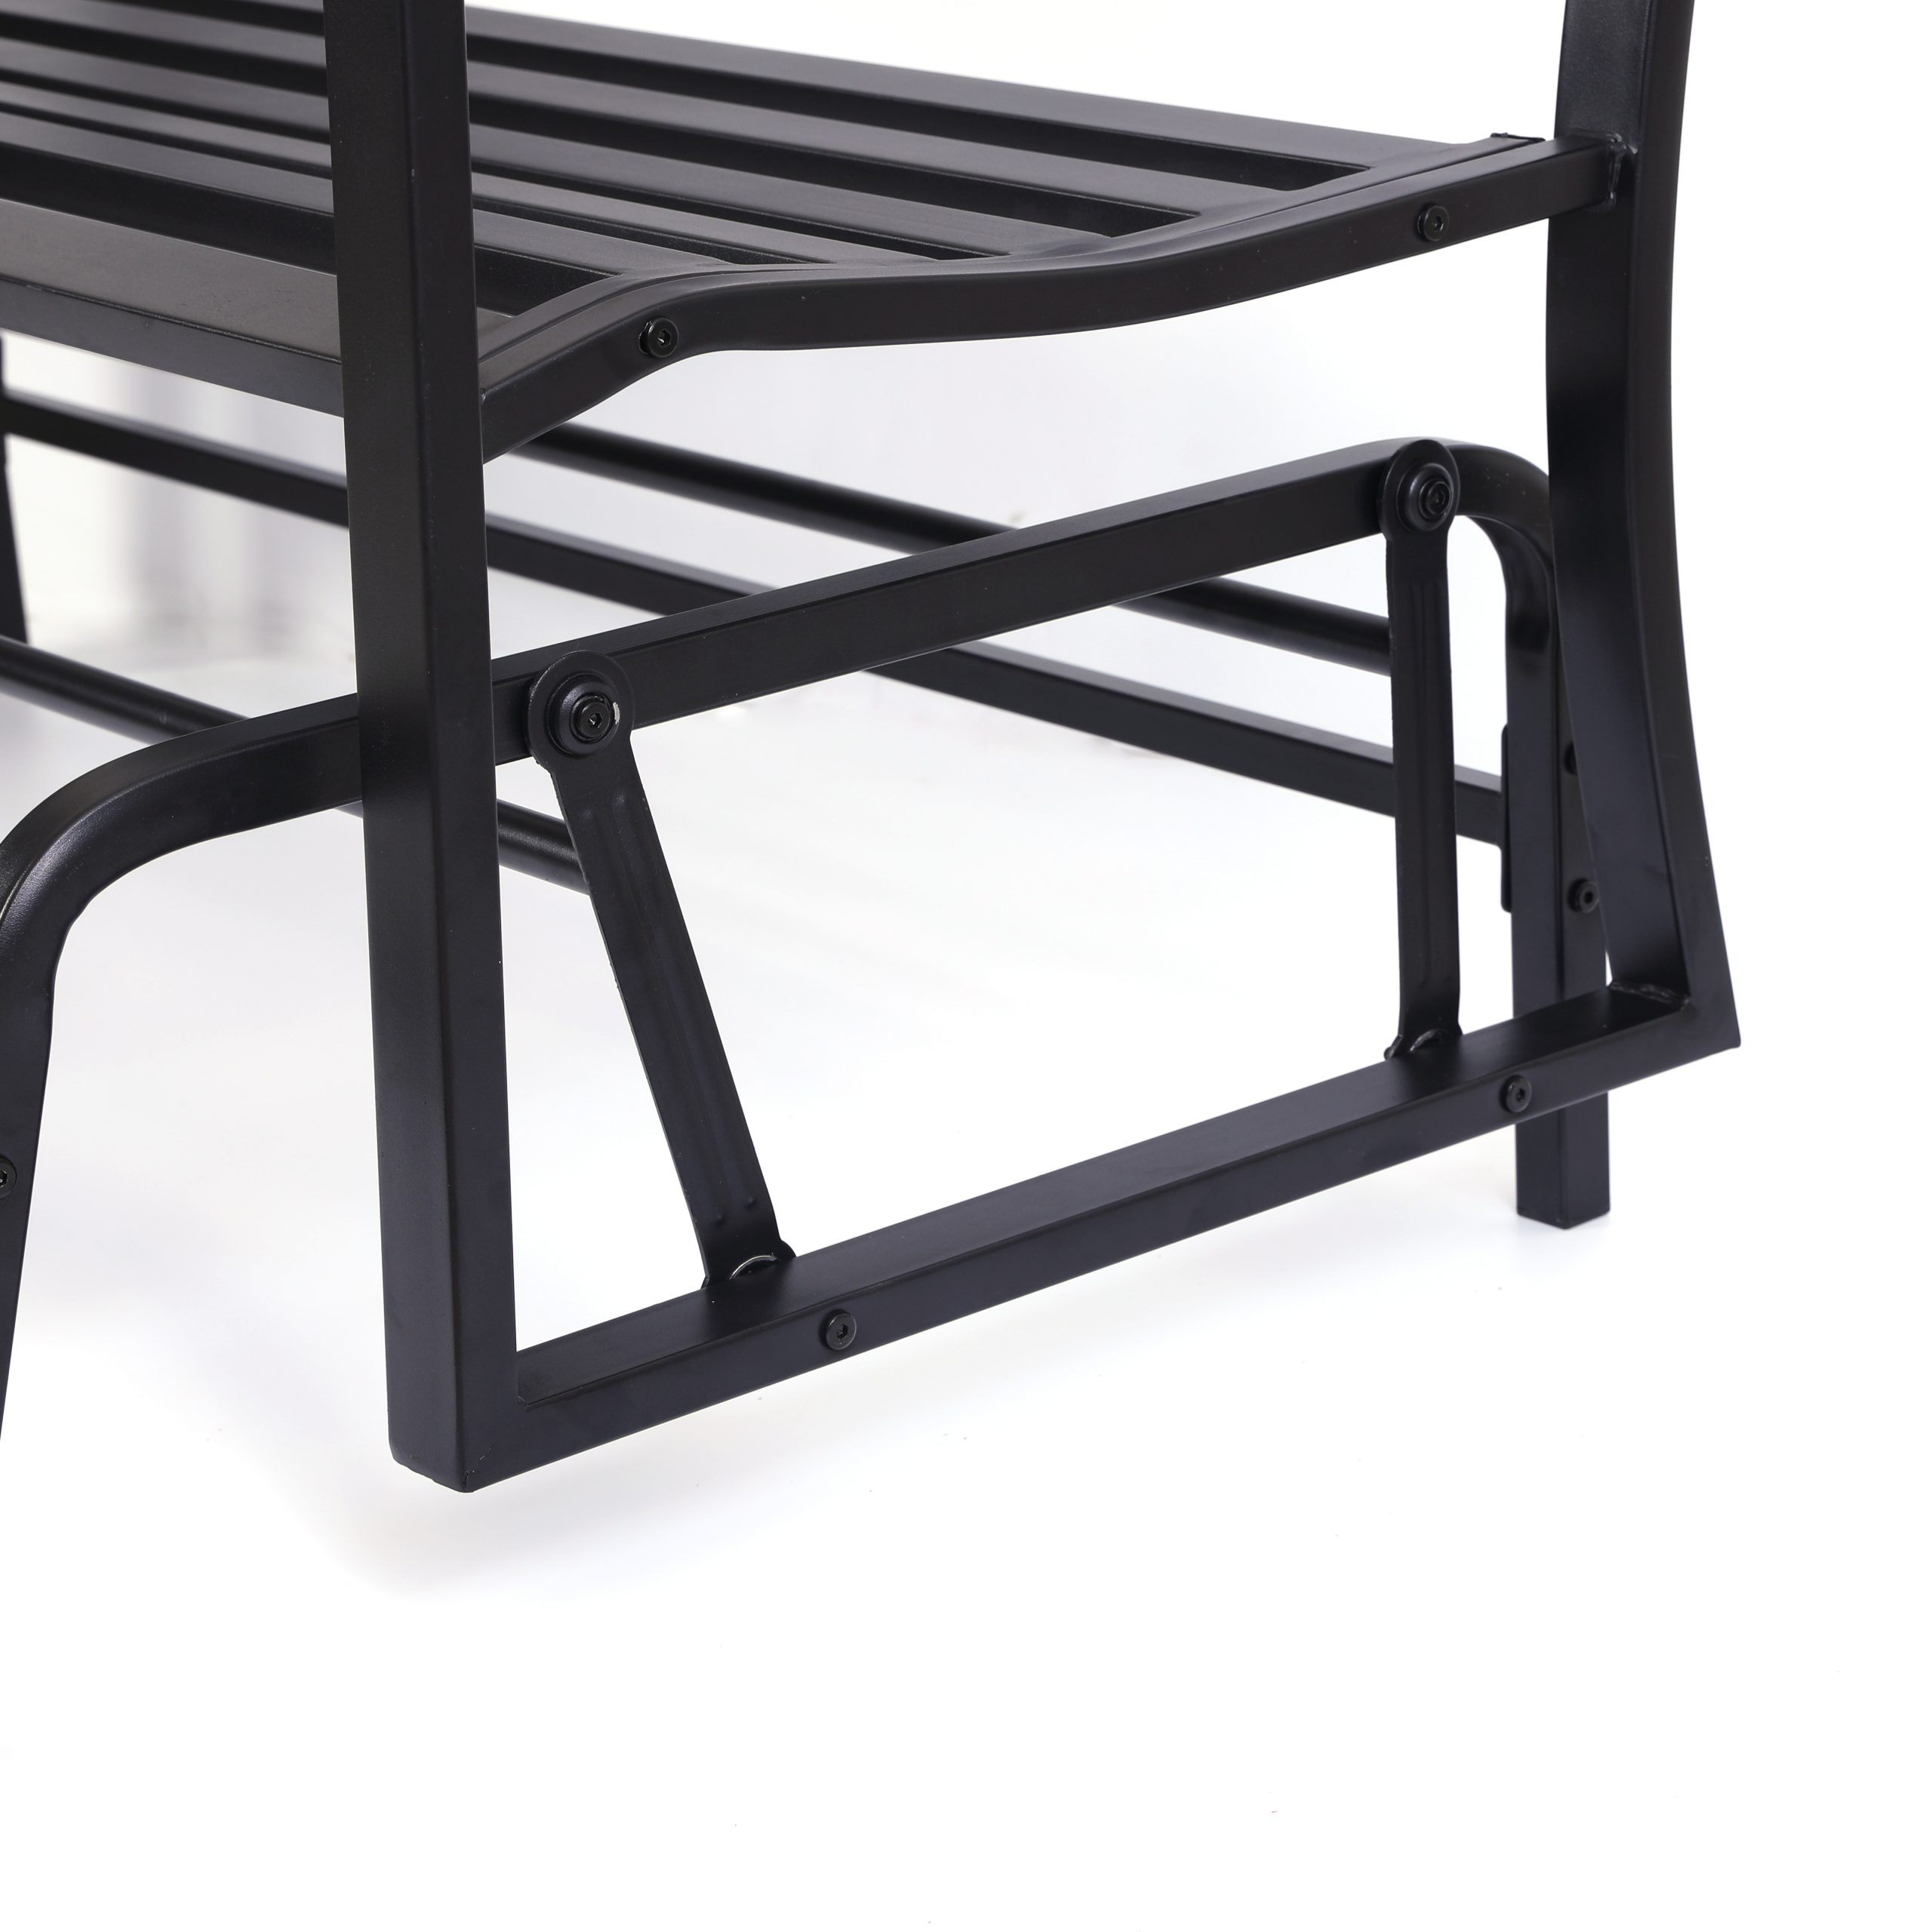 "Widely Used Details About Gardenised Black Steel Patio Garden Park Yard 50"" Outdoor Swing Glider Bench Throughout Black Steel Patio Swing Glider Benches Powder Coated (View 4 of 25)"